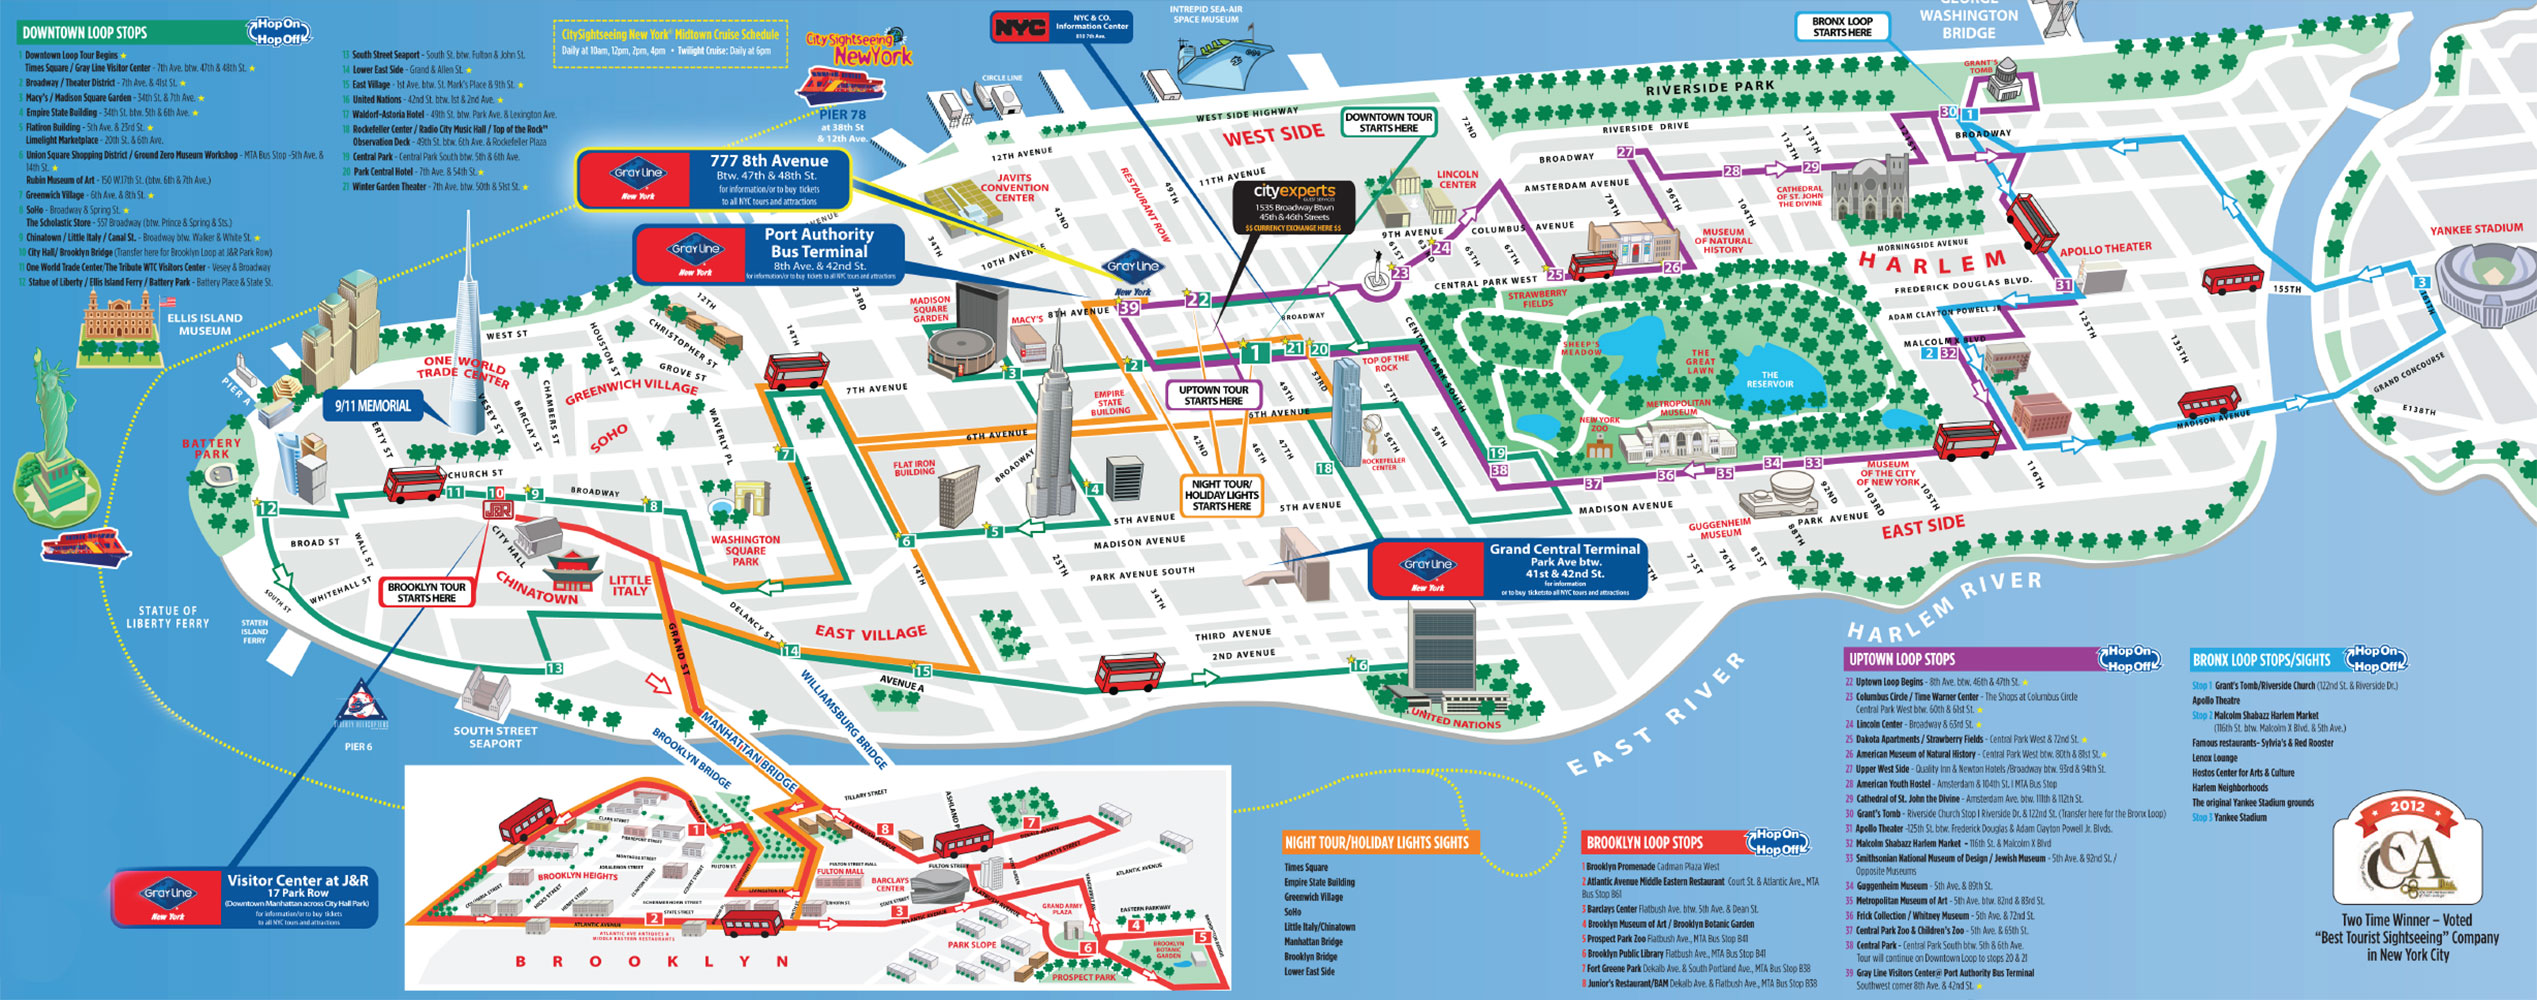 Tourist Attractions In New York Map New York Tourist Attractions – NY Tourist Map